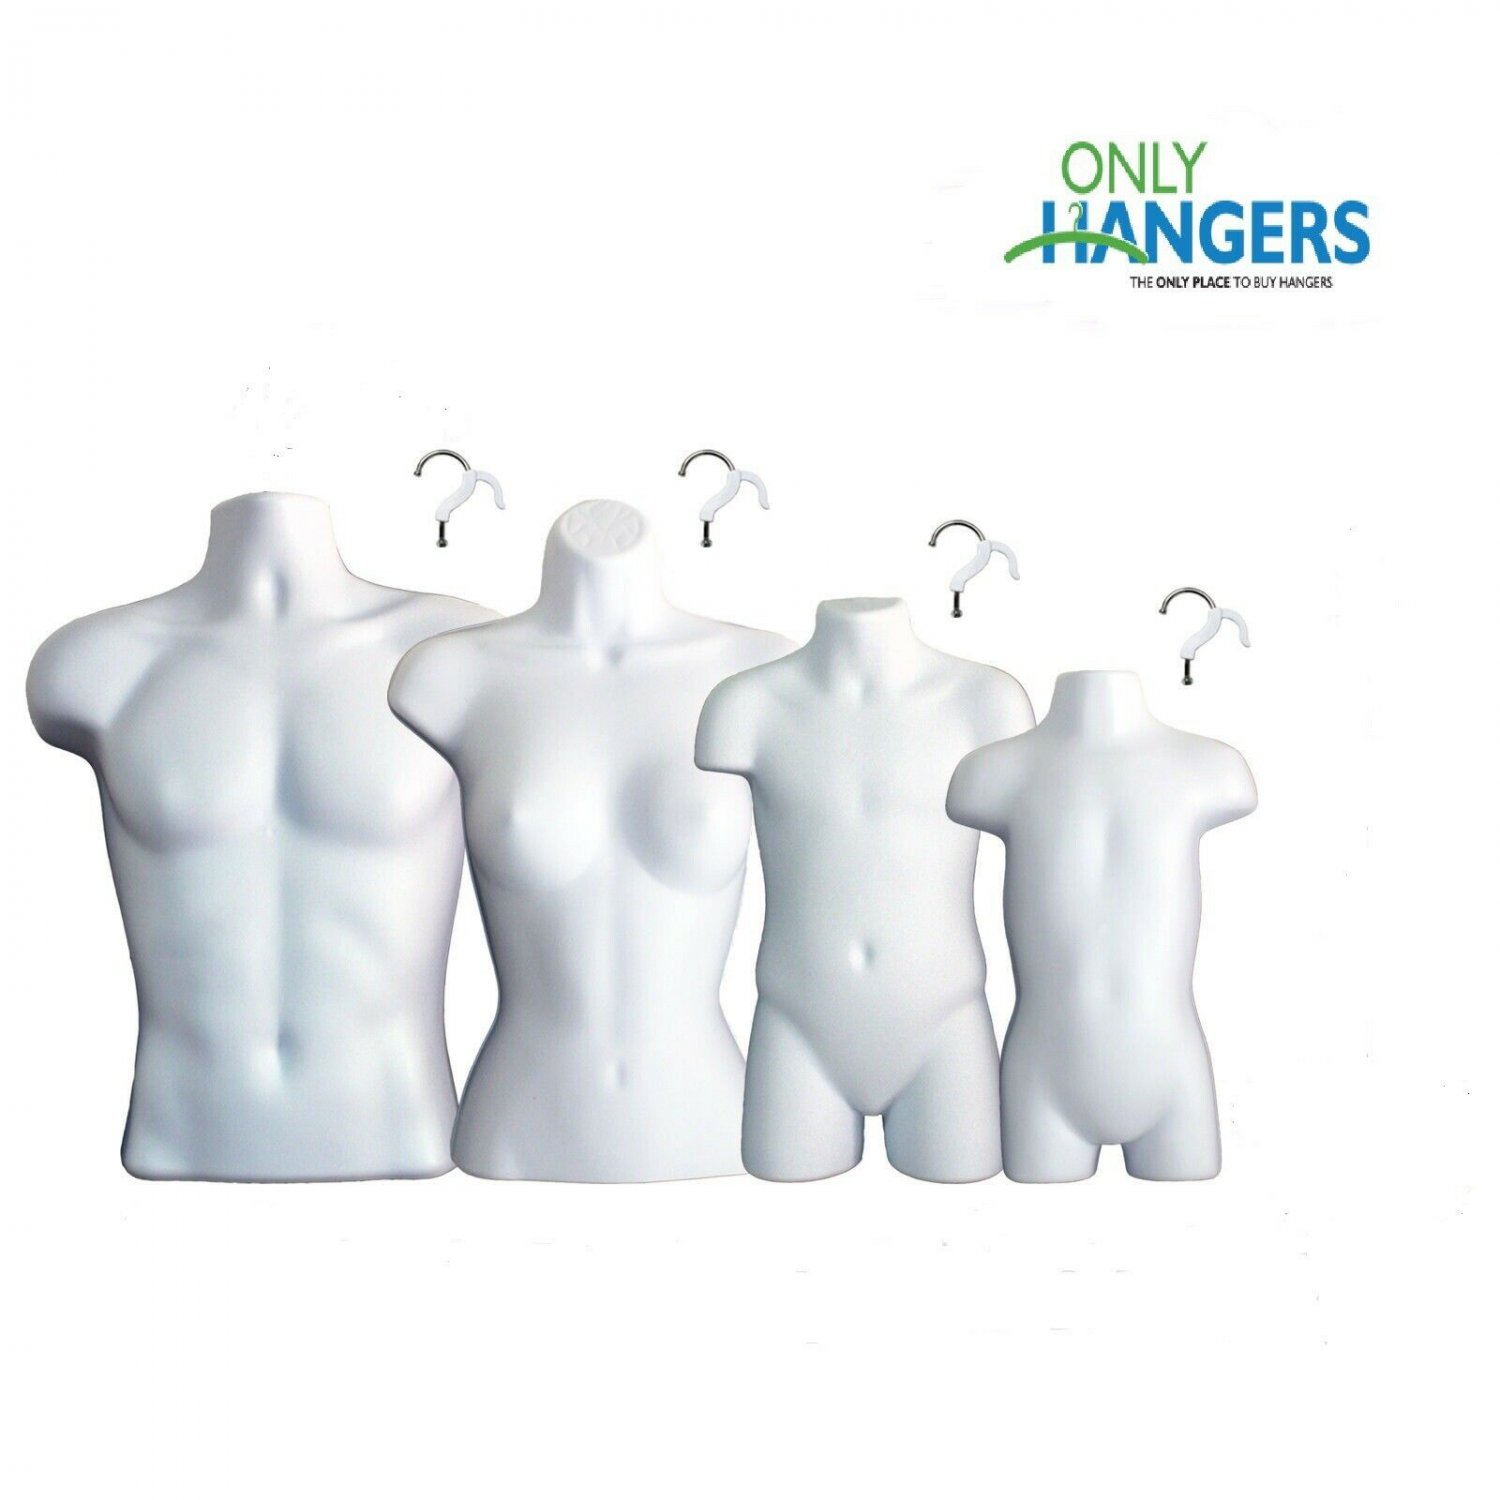 White Female Dress Male Child And Toddler Set - 4 Body Mannequin Forms Display